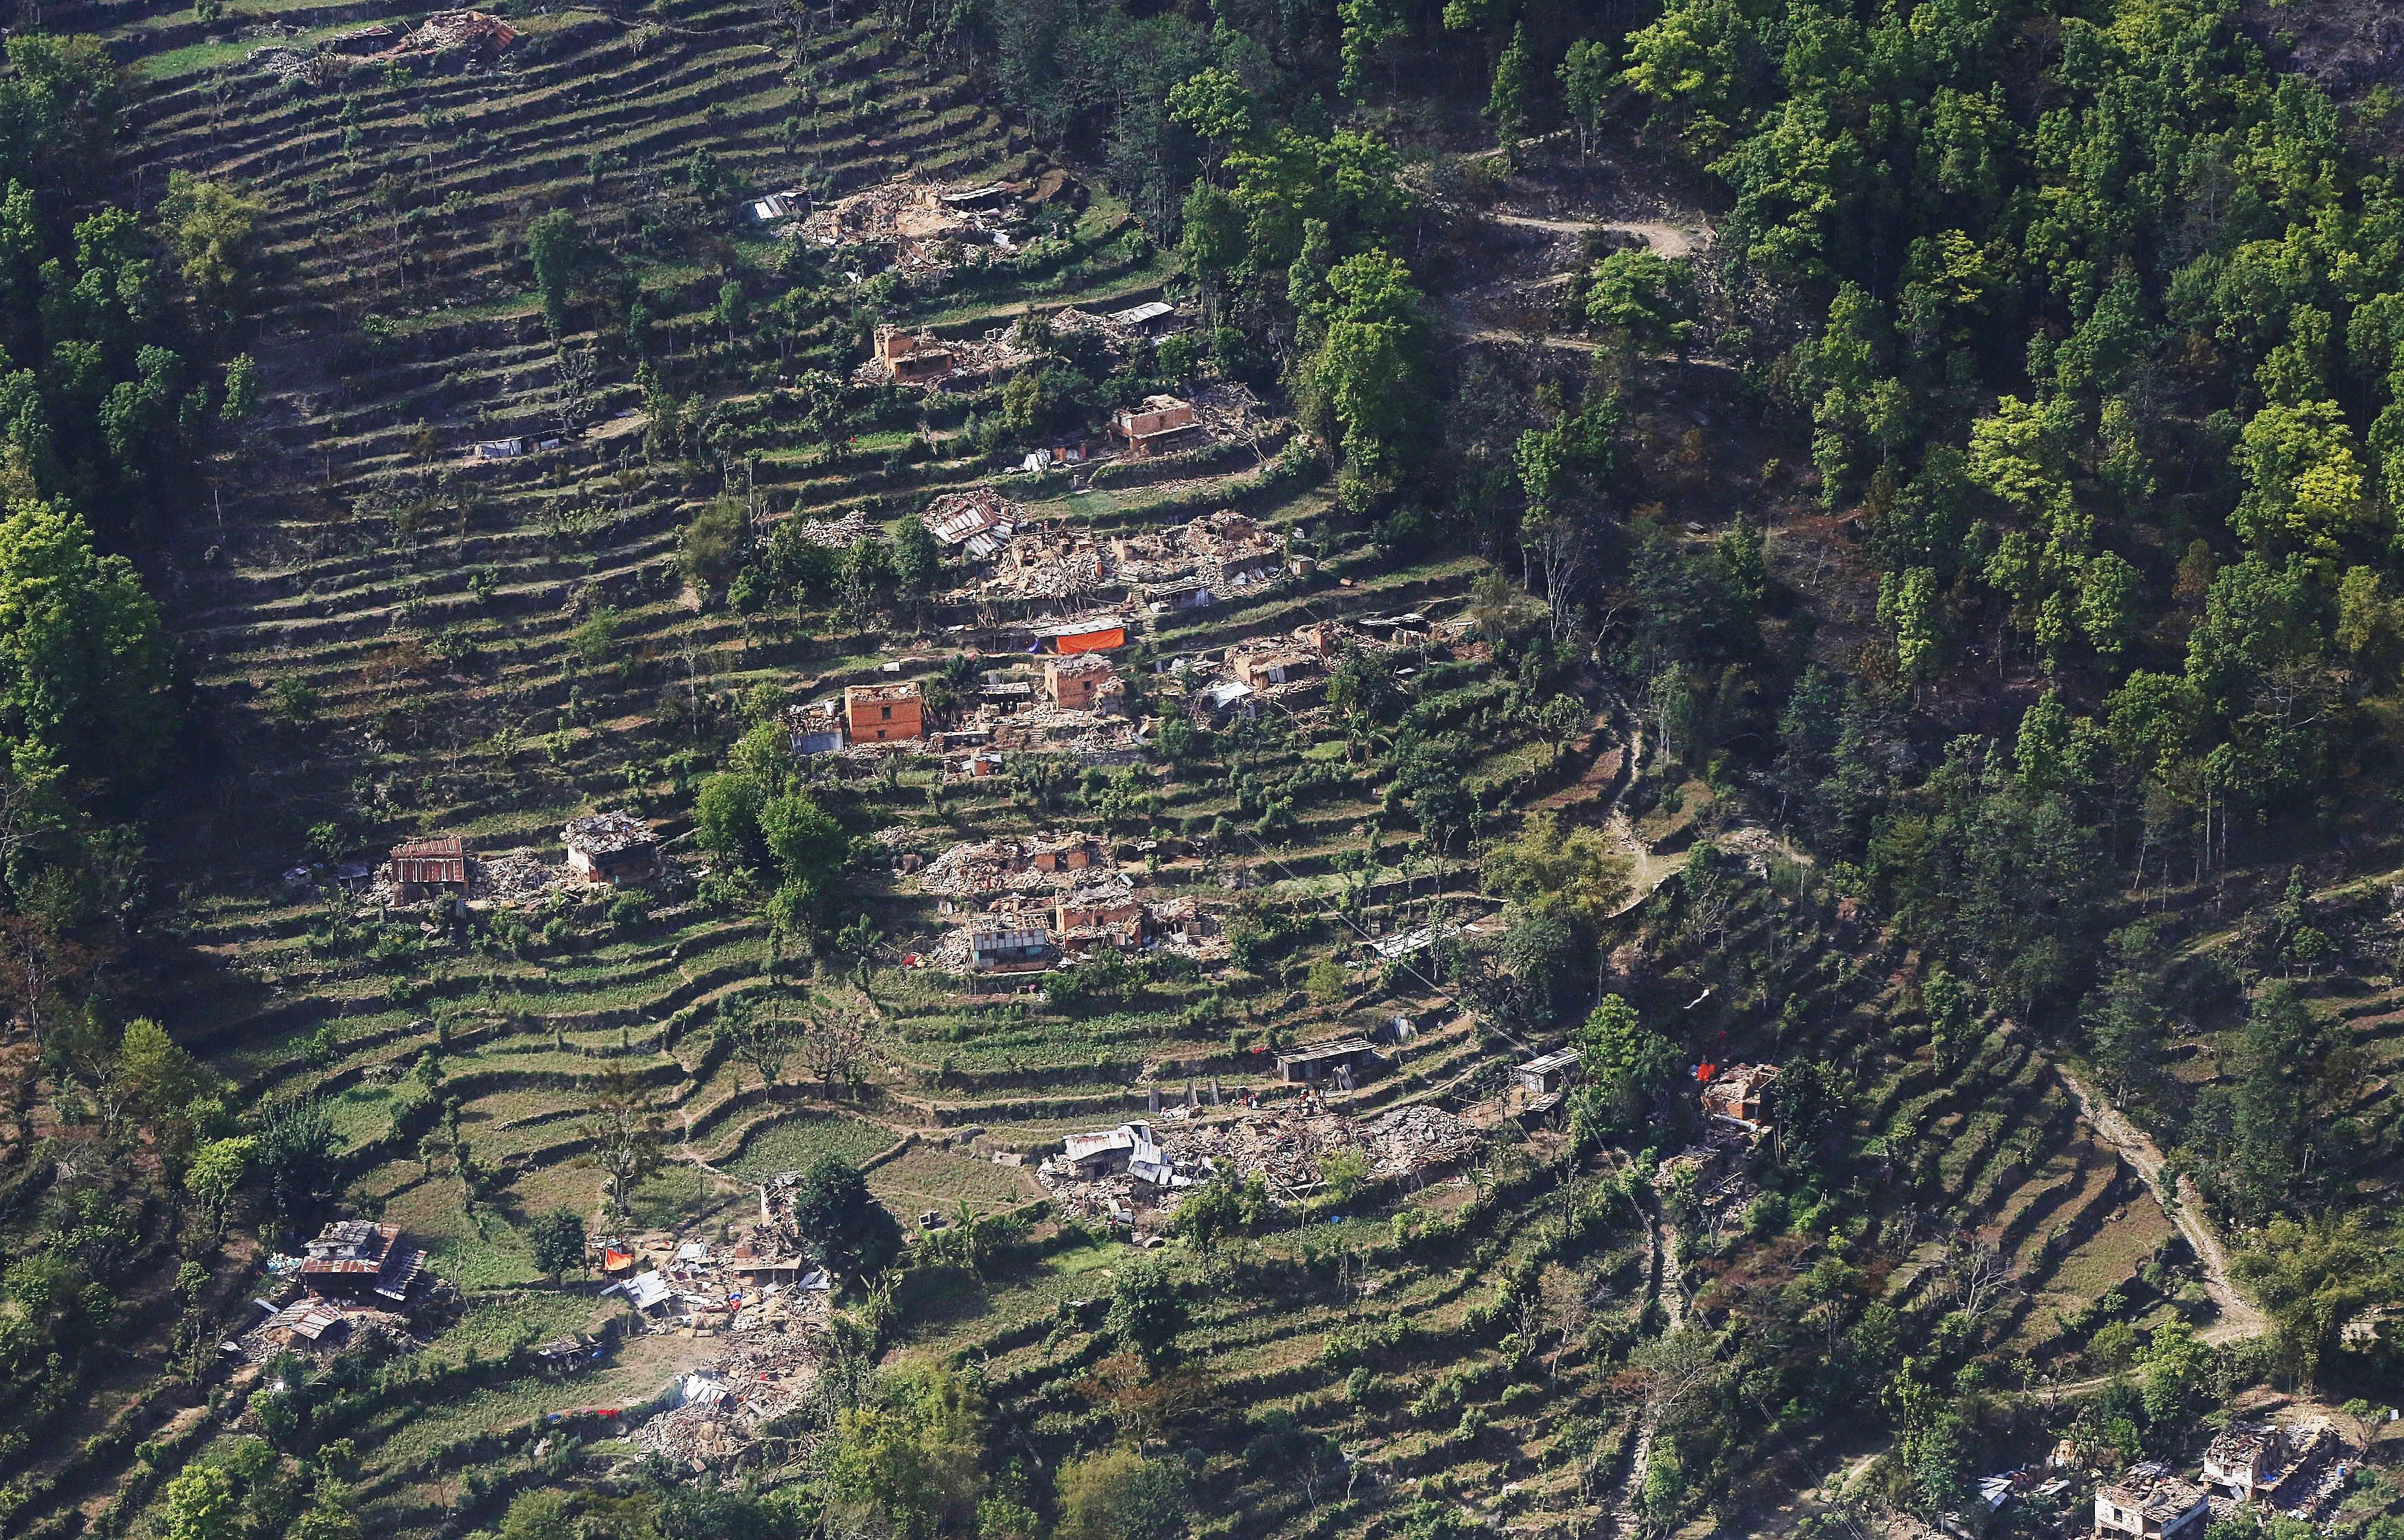 Aerial View of Earthquake hit Chautara Village in Nepal